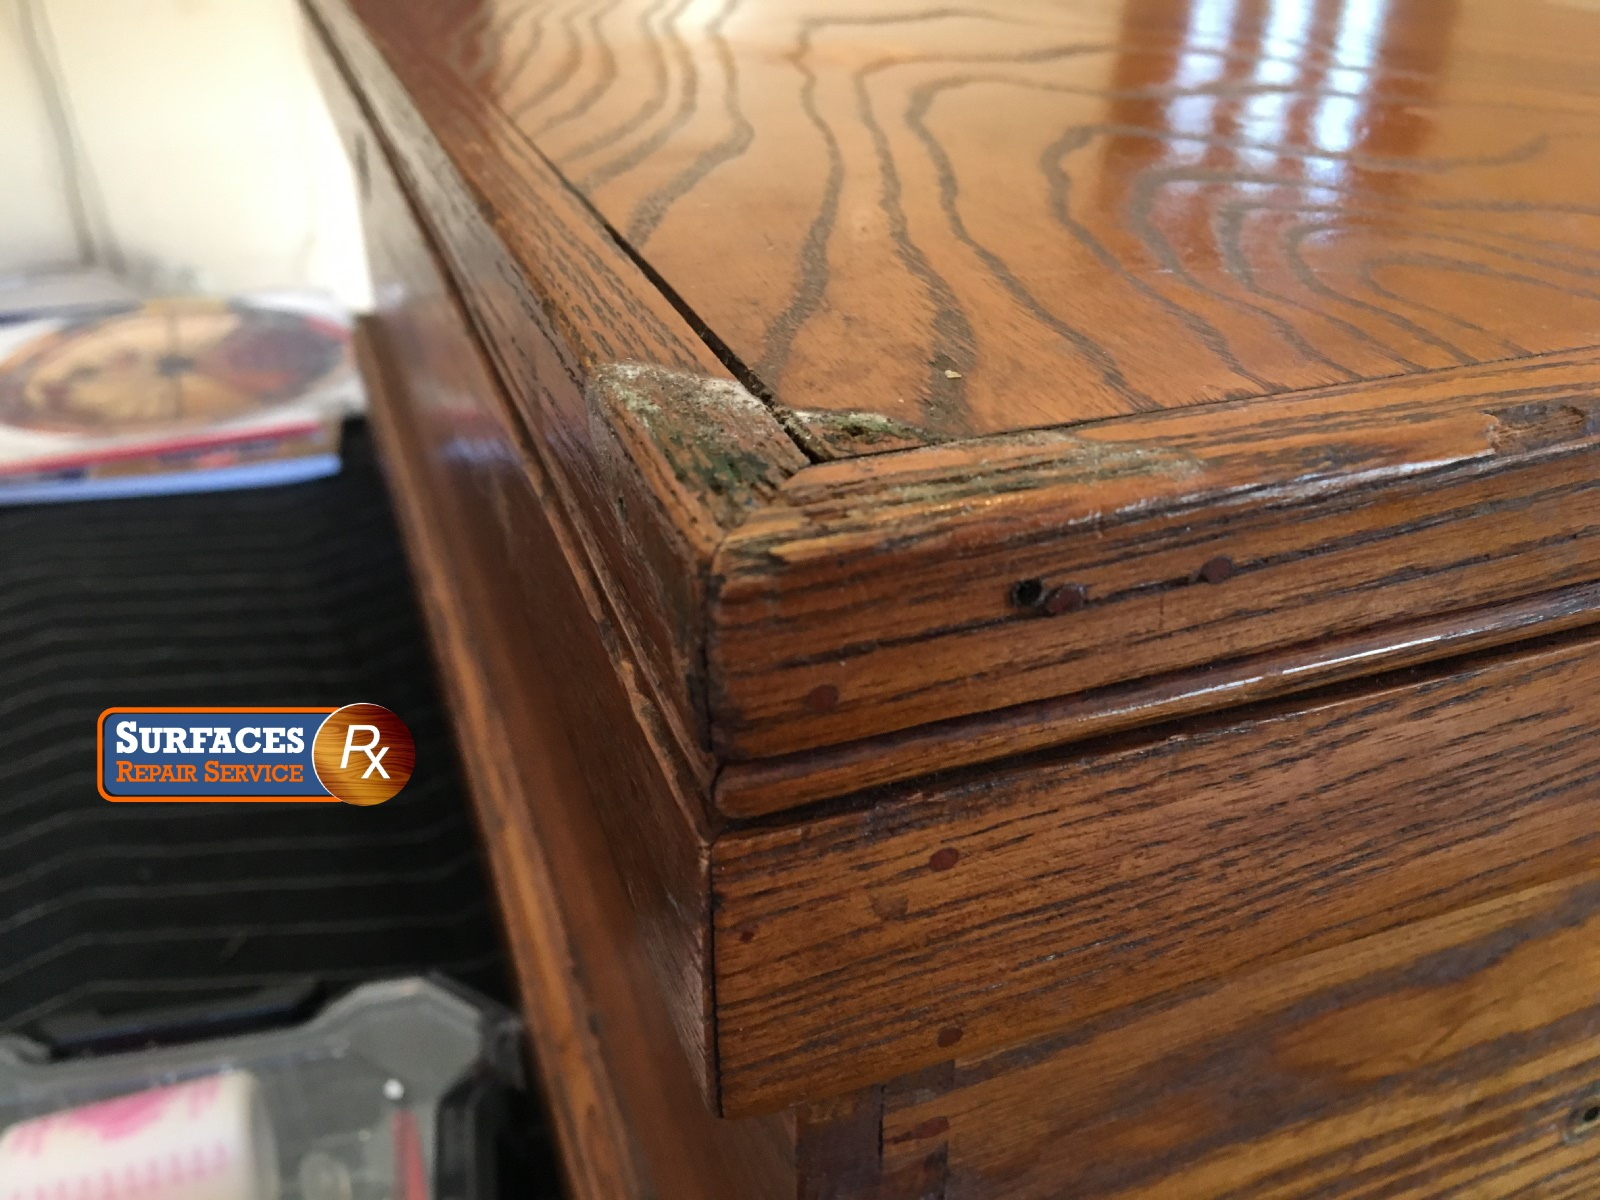 Antique Oak Chest Before Surfaces Rx Refinishing